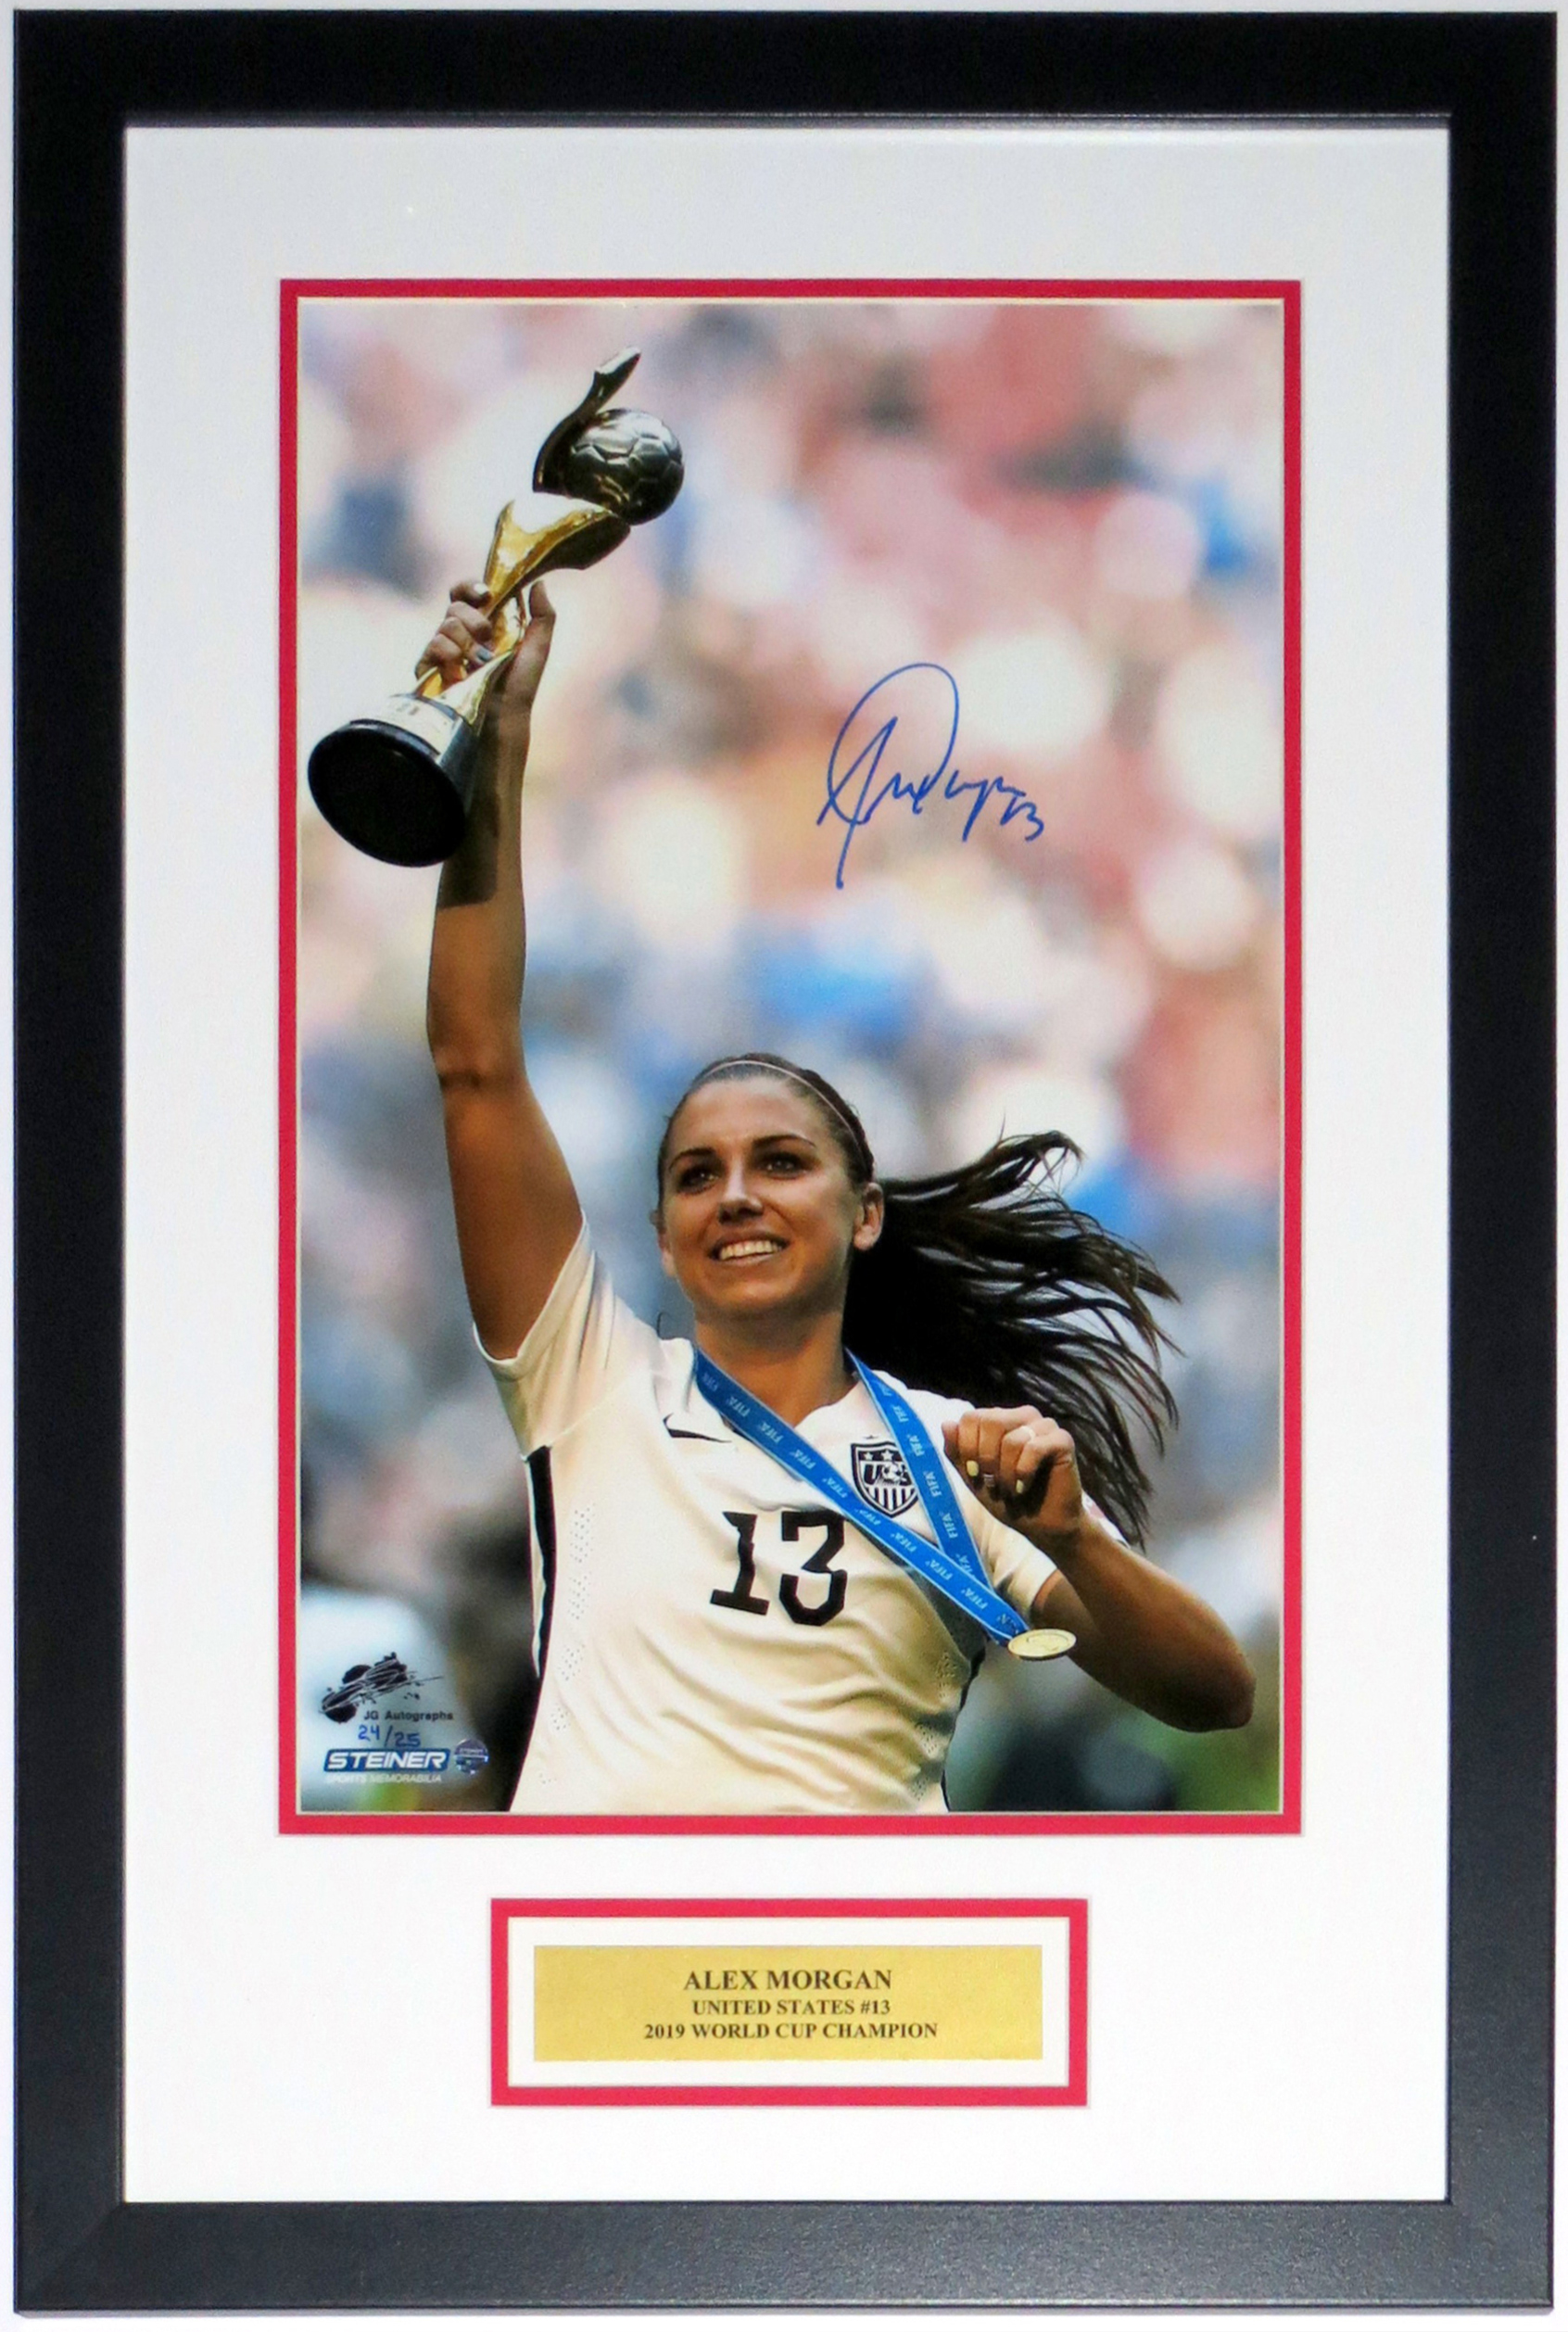 Alex Morgan Signed USA World Cup 12x18 Photo Limited to /25 - Steiner Sports COA Authenticated - Professionally Framed & Plate